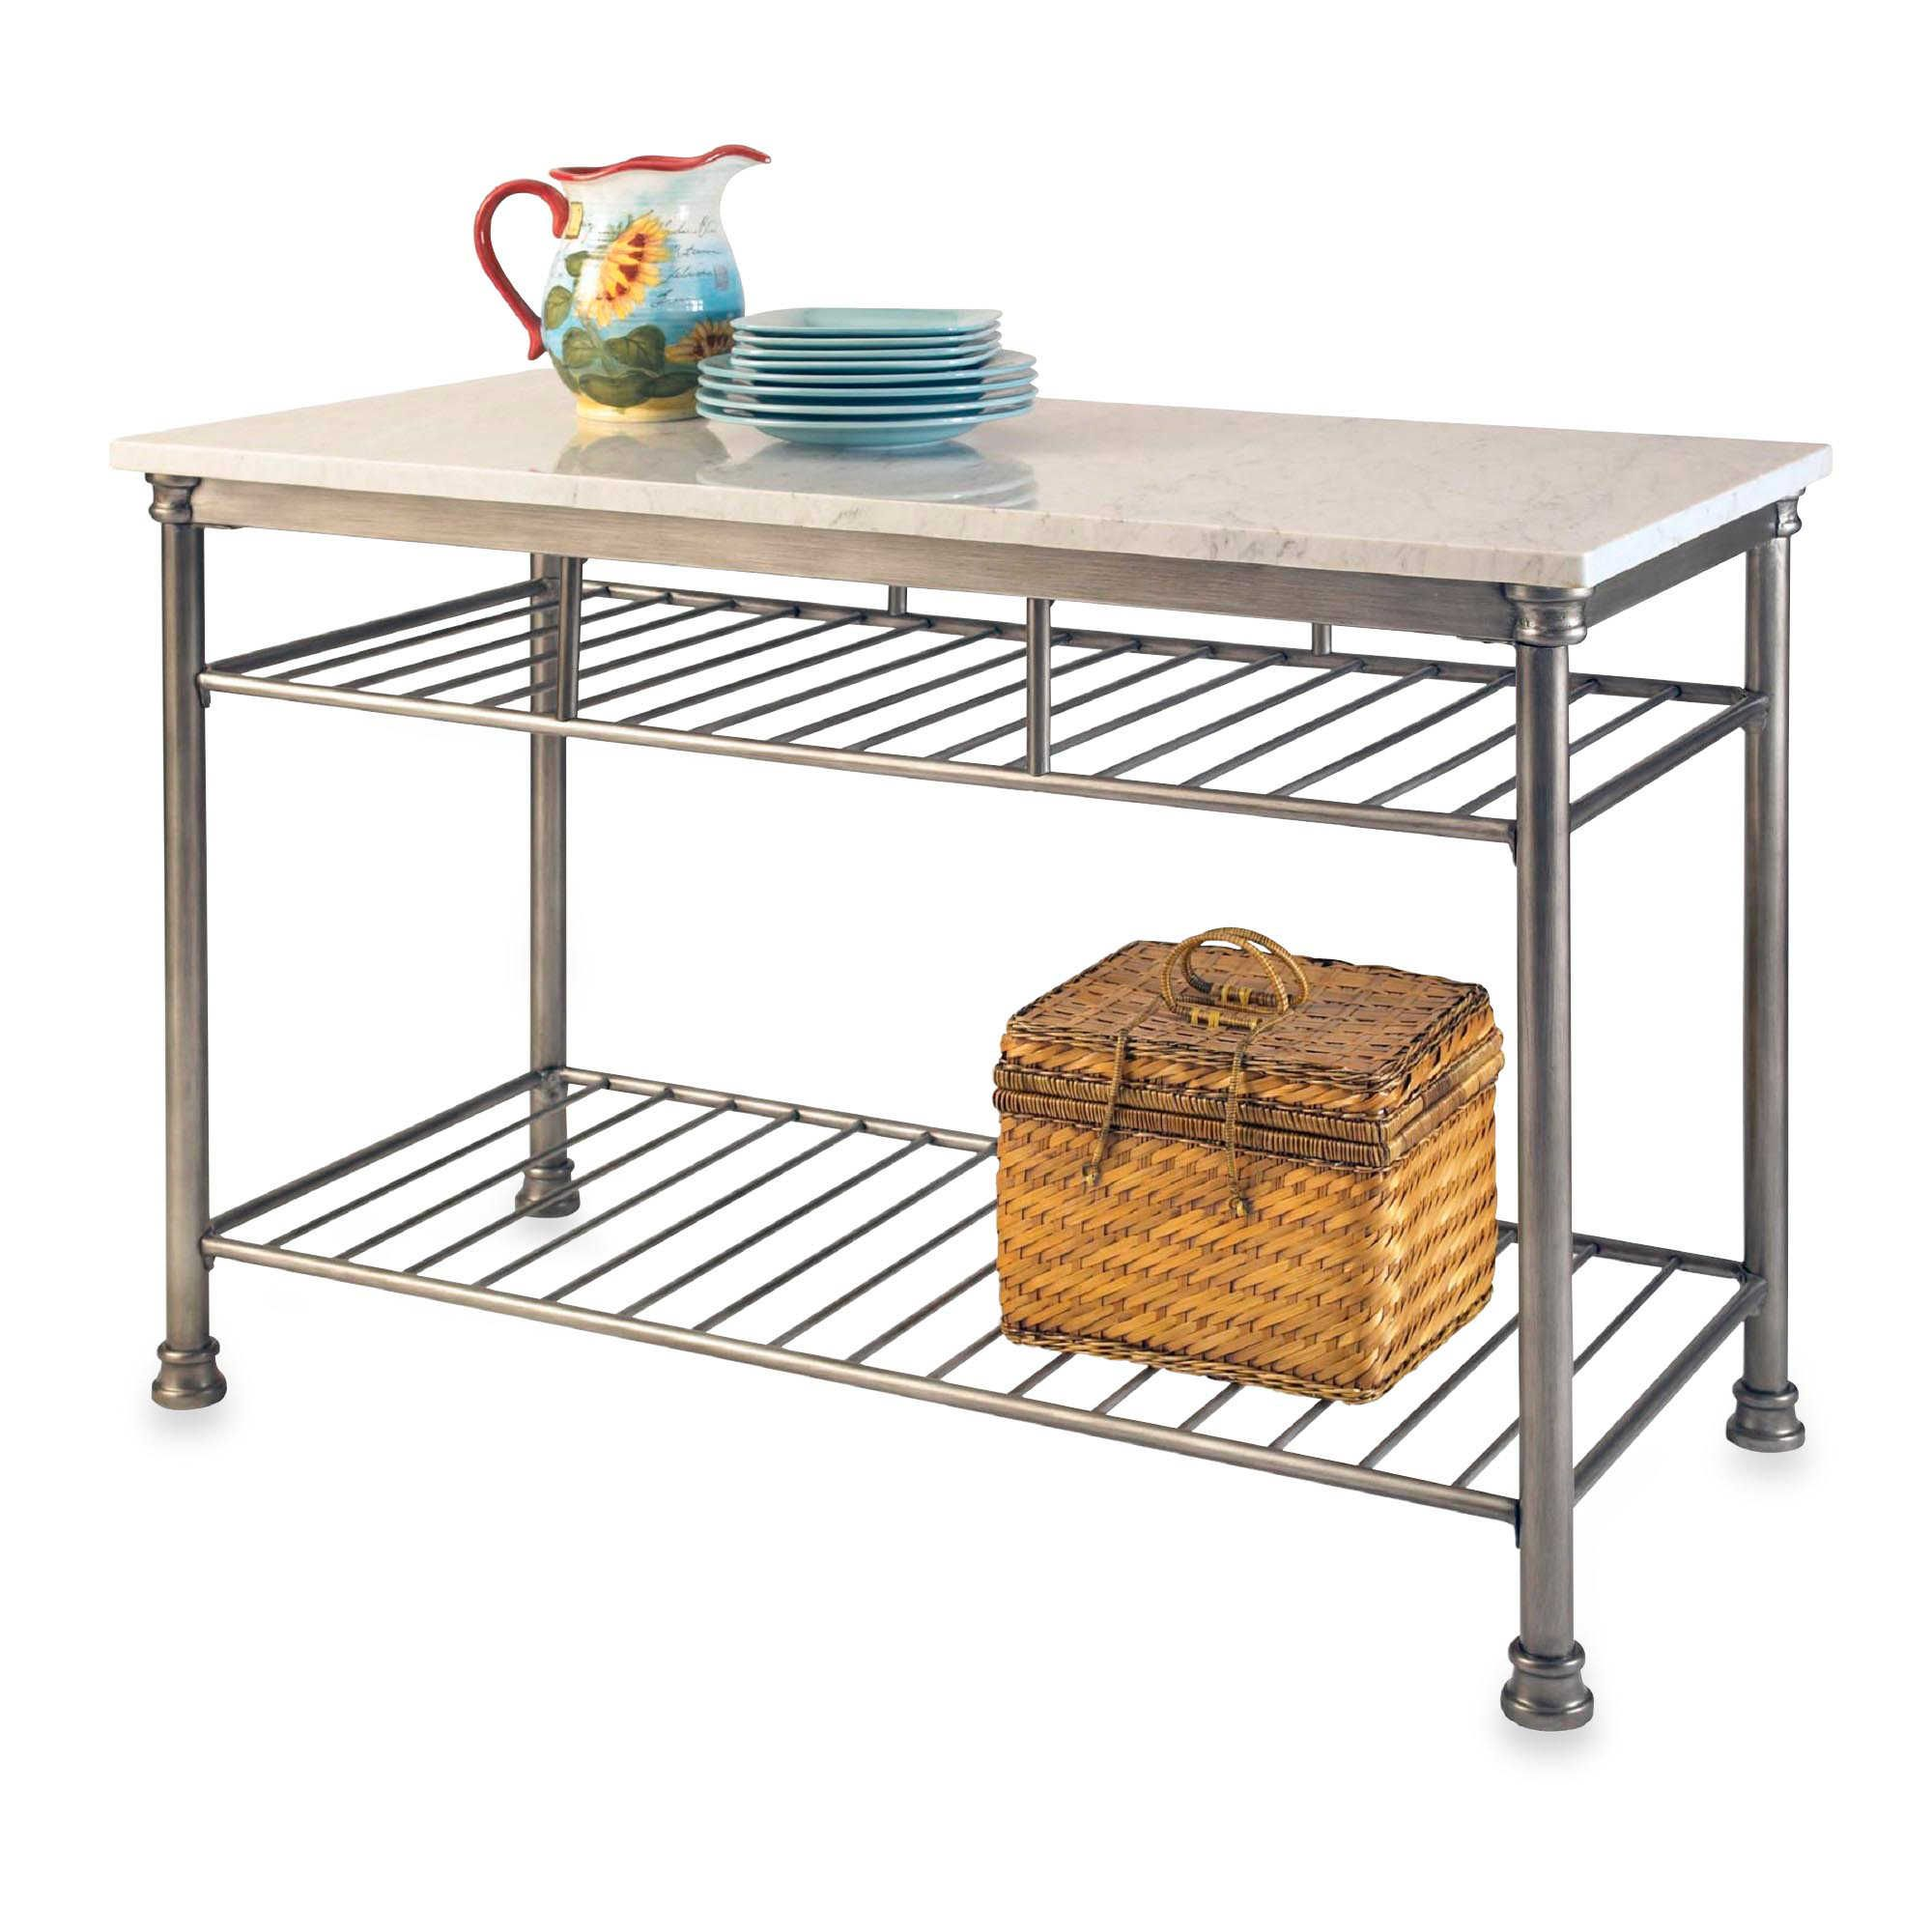 Home styles the orleans kitchen island with marble top ev